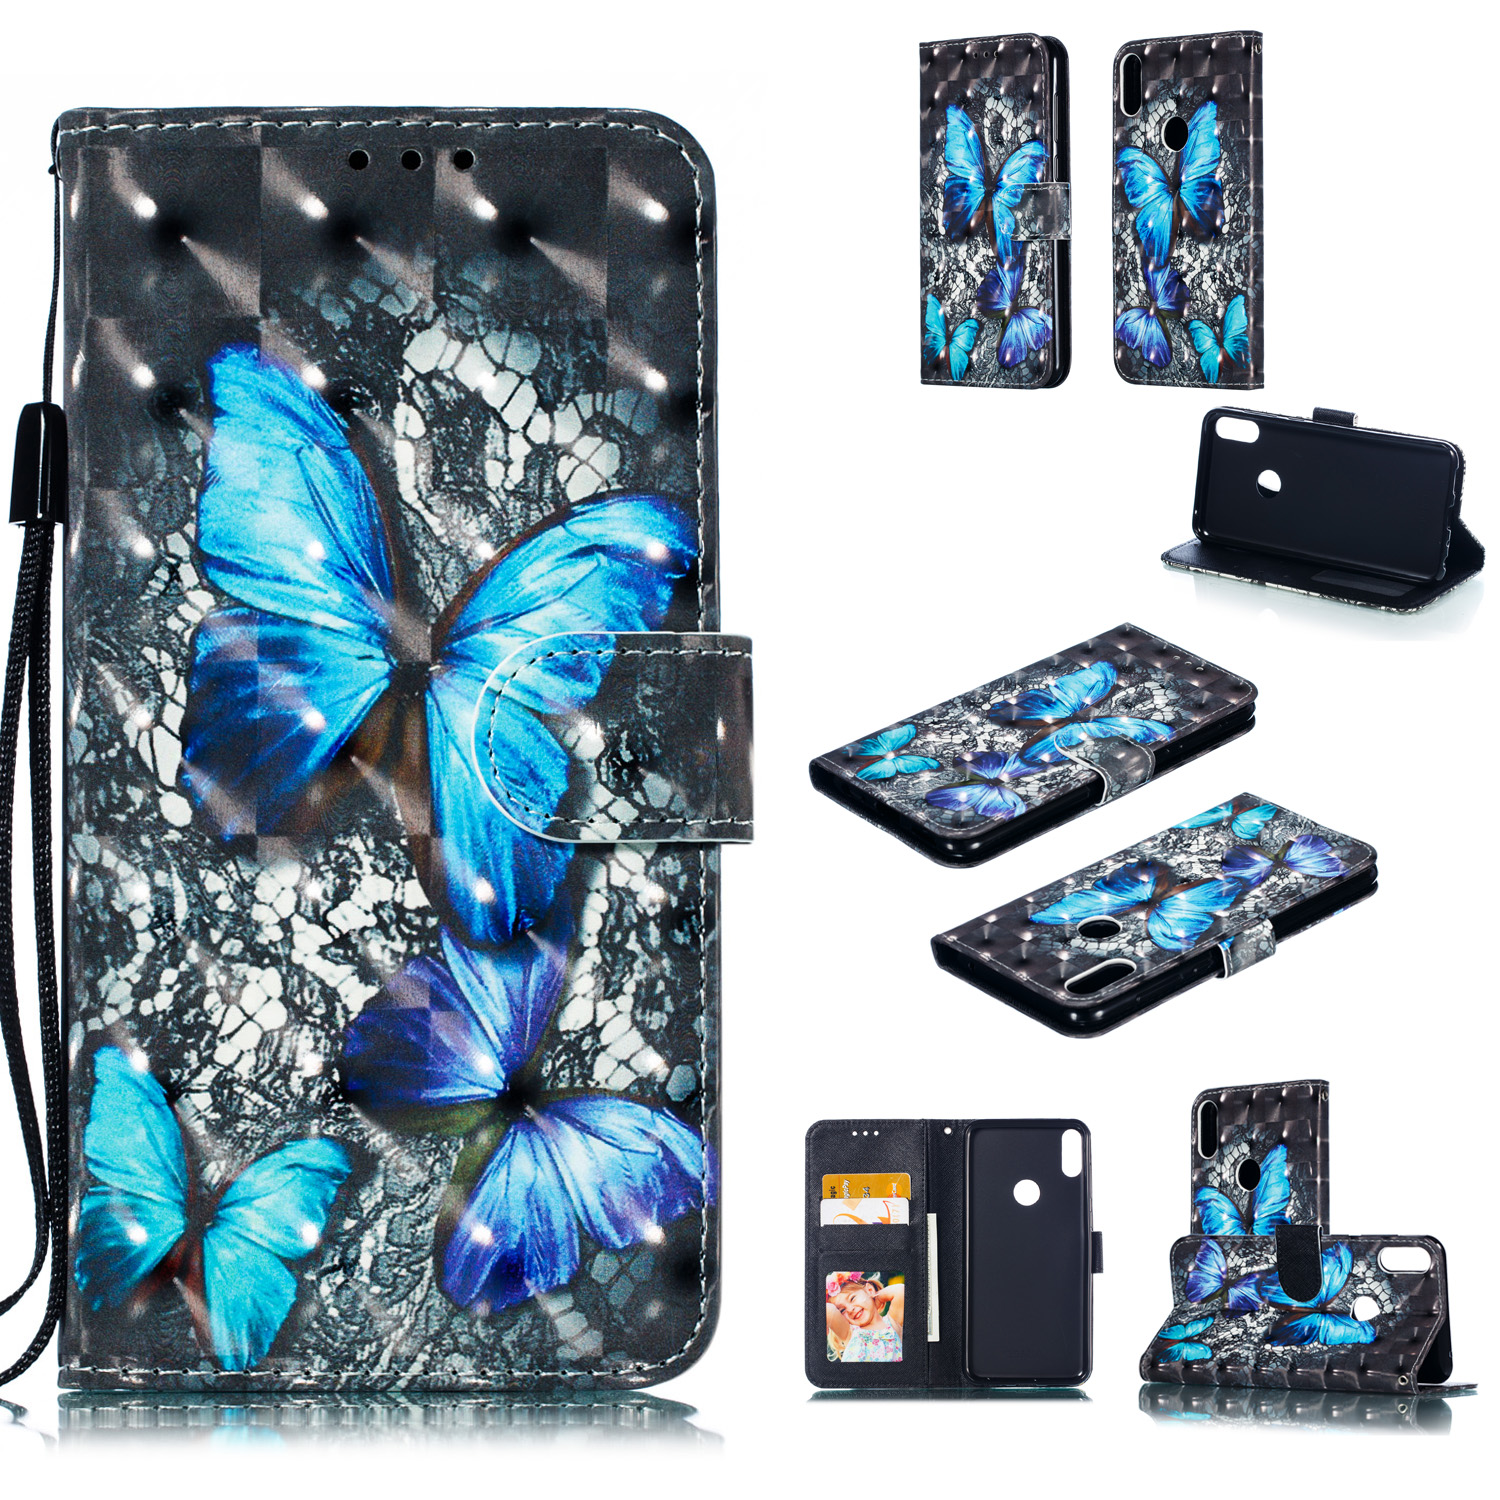 For ASUS ZENFONE MAX Pro M1/ZB601KL/ZB602KL 3D Coloured Painted PU Magnetic Clasp Phone Case with Card Slots Bracket Lanyard Blue diamond butterfly